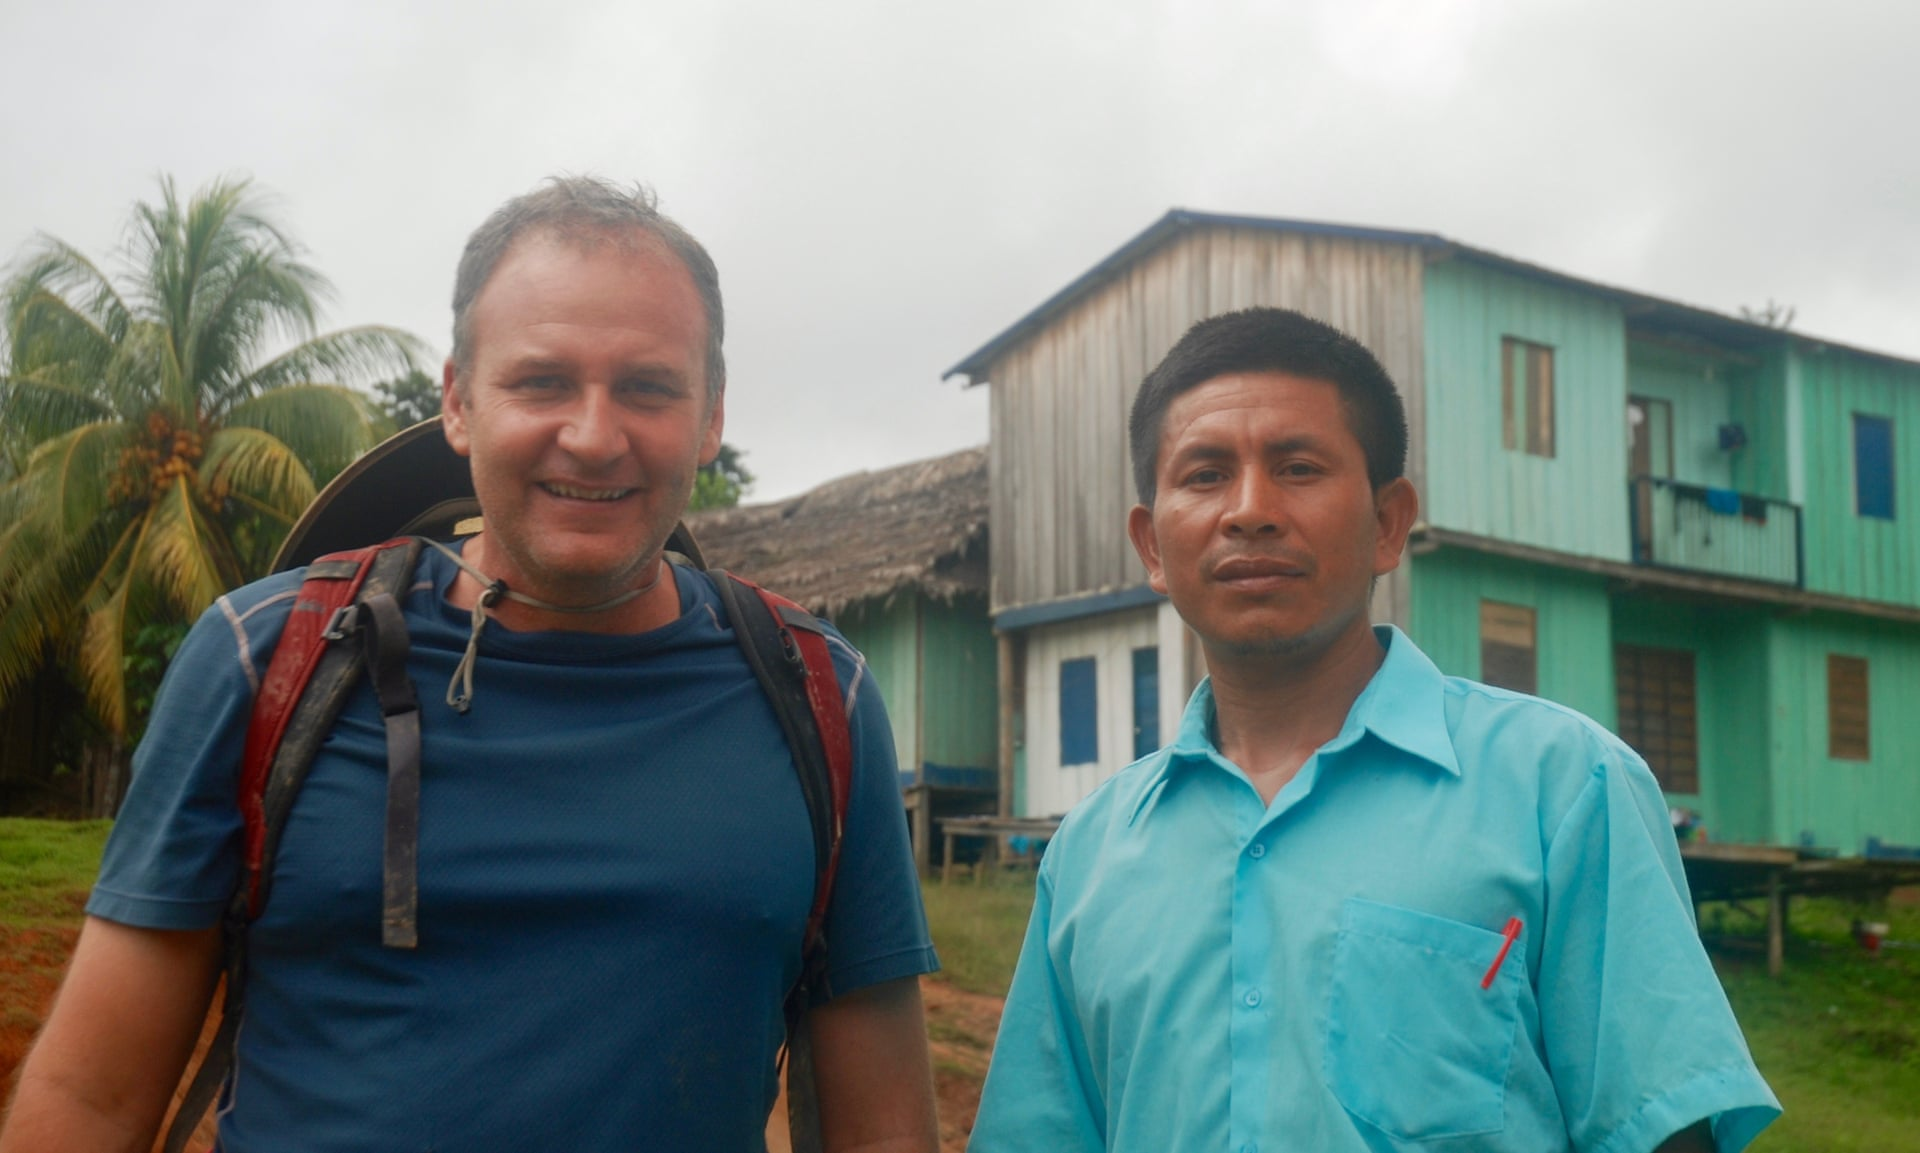 Acaté's director Bill Park with Matsés artist Guillermo Nëcca Pëmen Mënquë who, as part of another project with Acaté, has illustrated a 146-page children's book to improve literacy. Photograph: David Hill